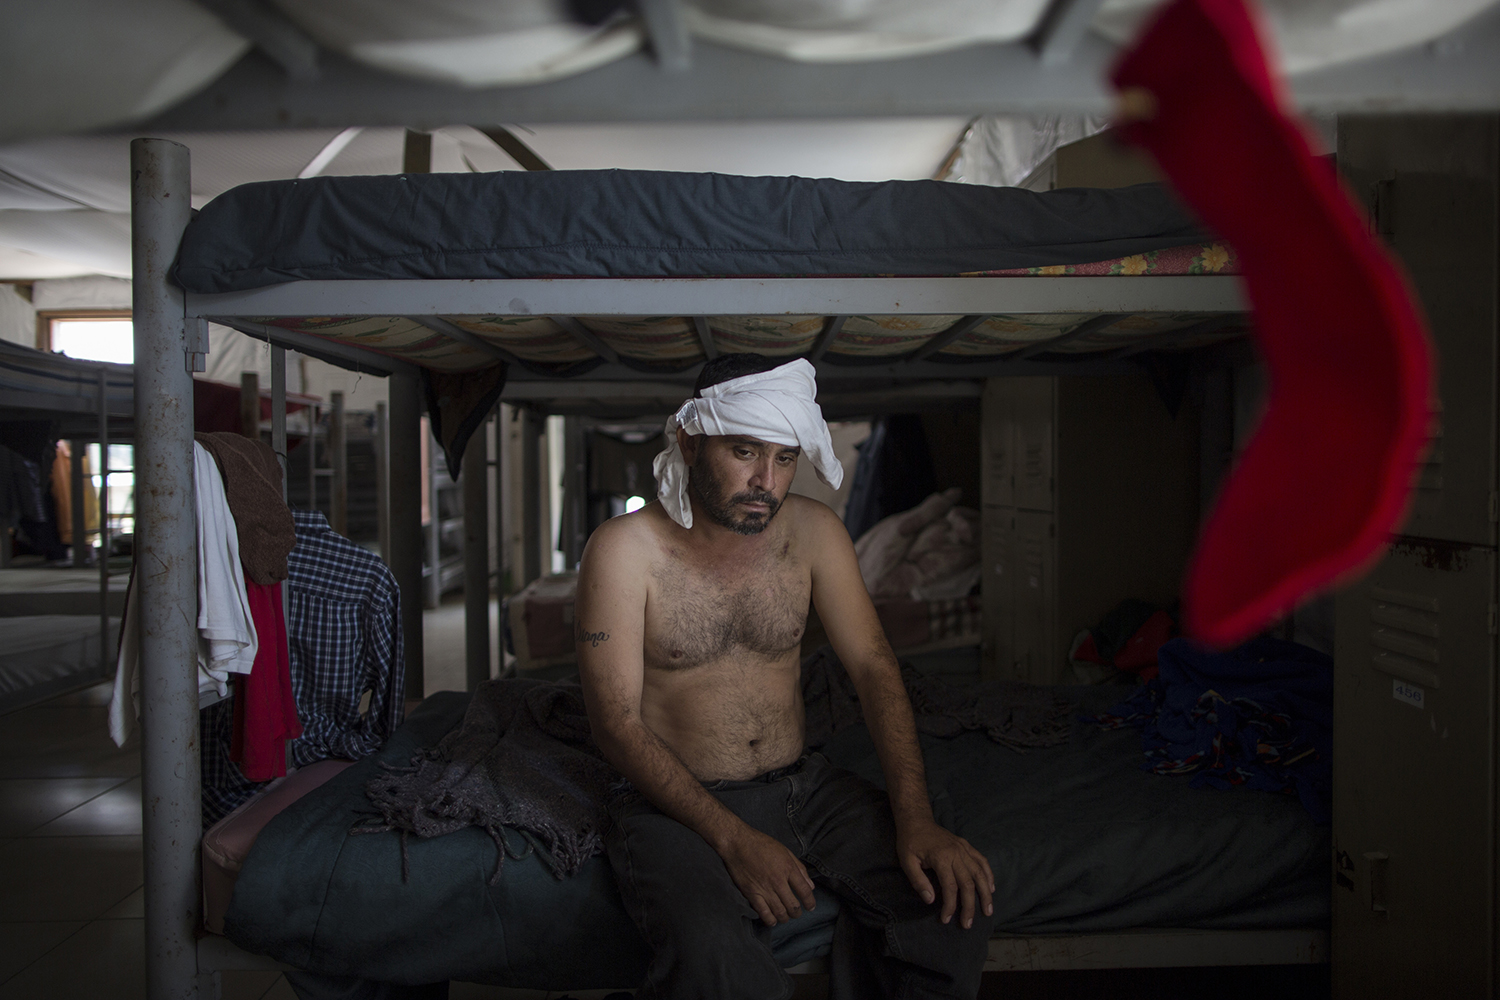 """Delfino Luis Trevino, with his head bandaged, rests on a bunk bed at the """"Senda de Vida"""" migrant shelter in Reynosa, Mexico, Wednesday, March 22, 2017. Trevino, from Veracruz, Mexico, said he was beaten one week ago by """"polleros,"""" the Spanish name for human traffickers on the border, because he tried to cross to McAllen, Texas without hiring them. He said they where charging $500 dollars. (AP Photo/Rodrigo Abd)"""